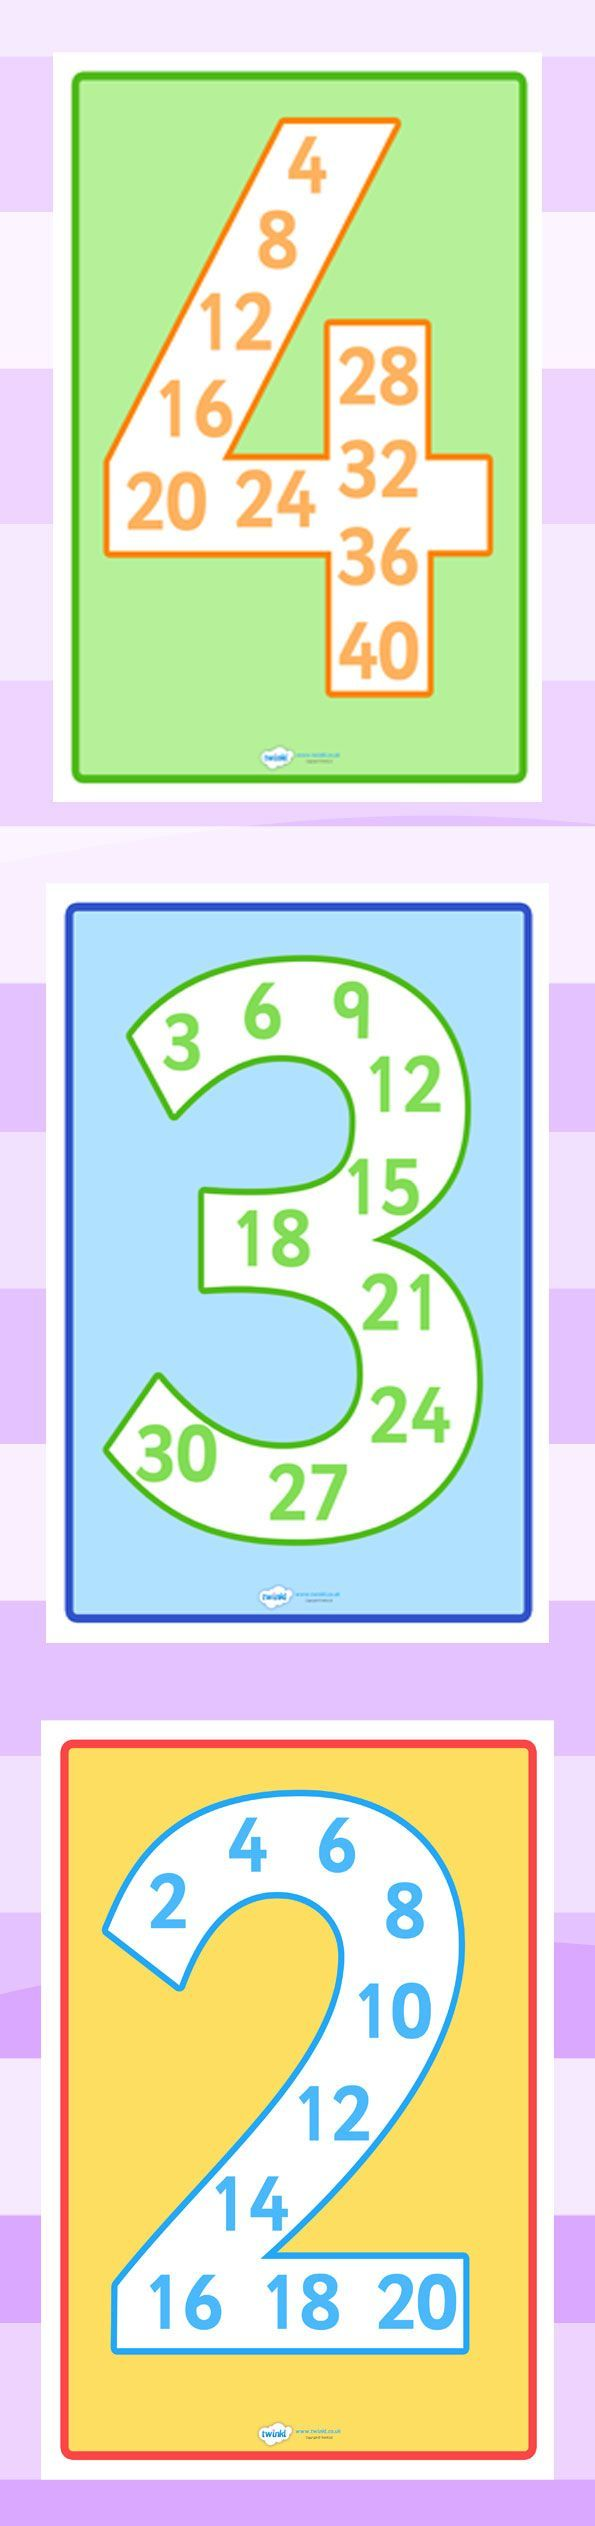 Twinkl Resources >> Number Multiples Individual Display Posters  >> Classroom printables for Pre-School, Kindergarten, Elementary School and beyond! Math, Numbers, Classroom Display, Posters